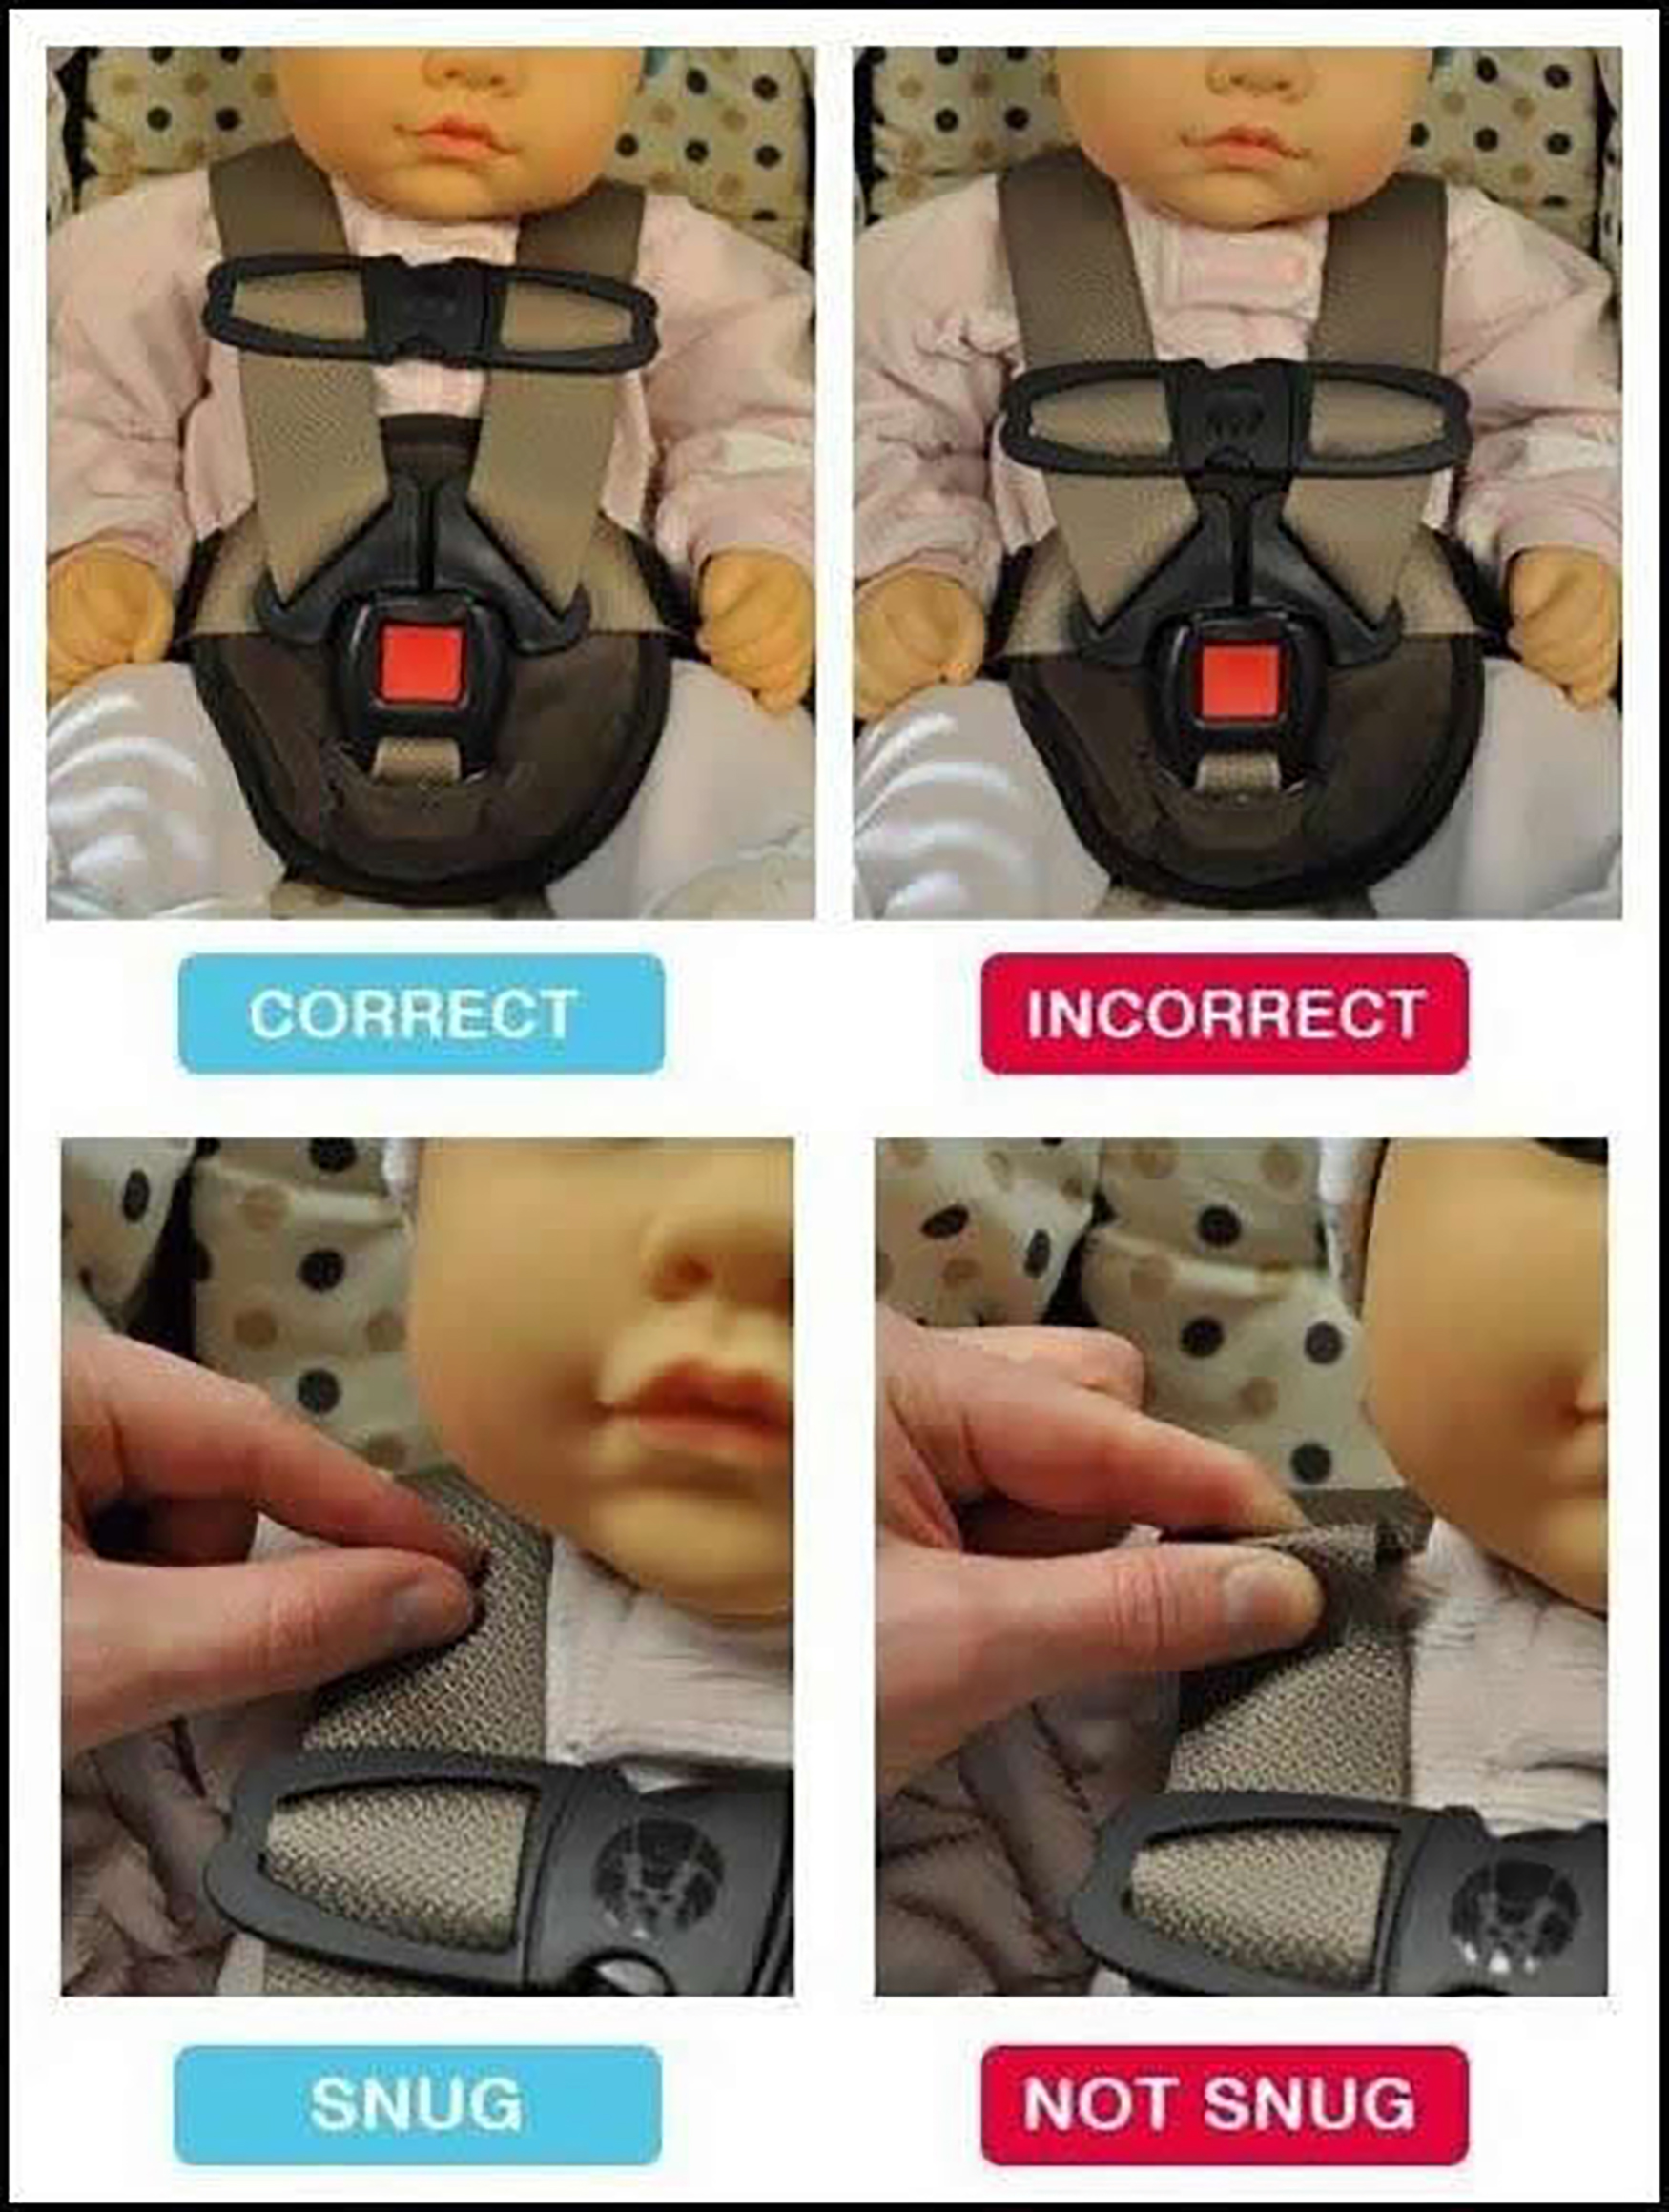 The National Highway Traffic Safety Administration reports that between 80 and 90 percent of car seats are not correctly installed. This image shows the correct and incorrect ways to use a child safety car seat.